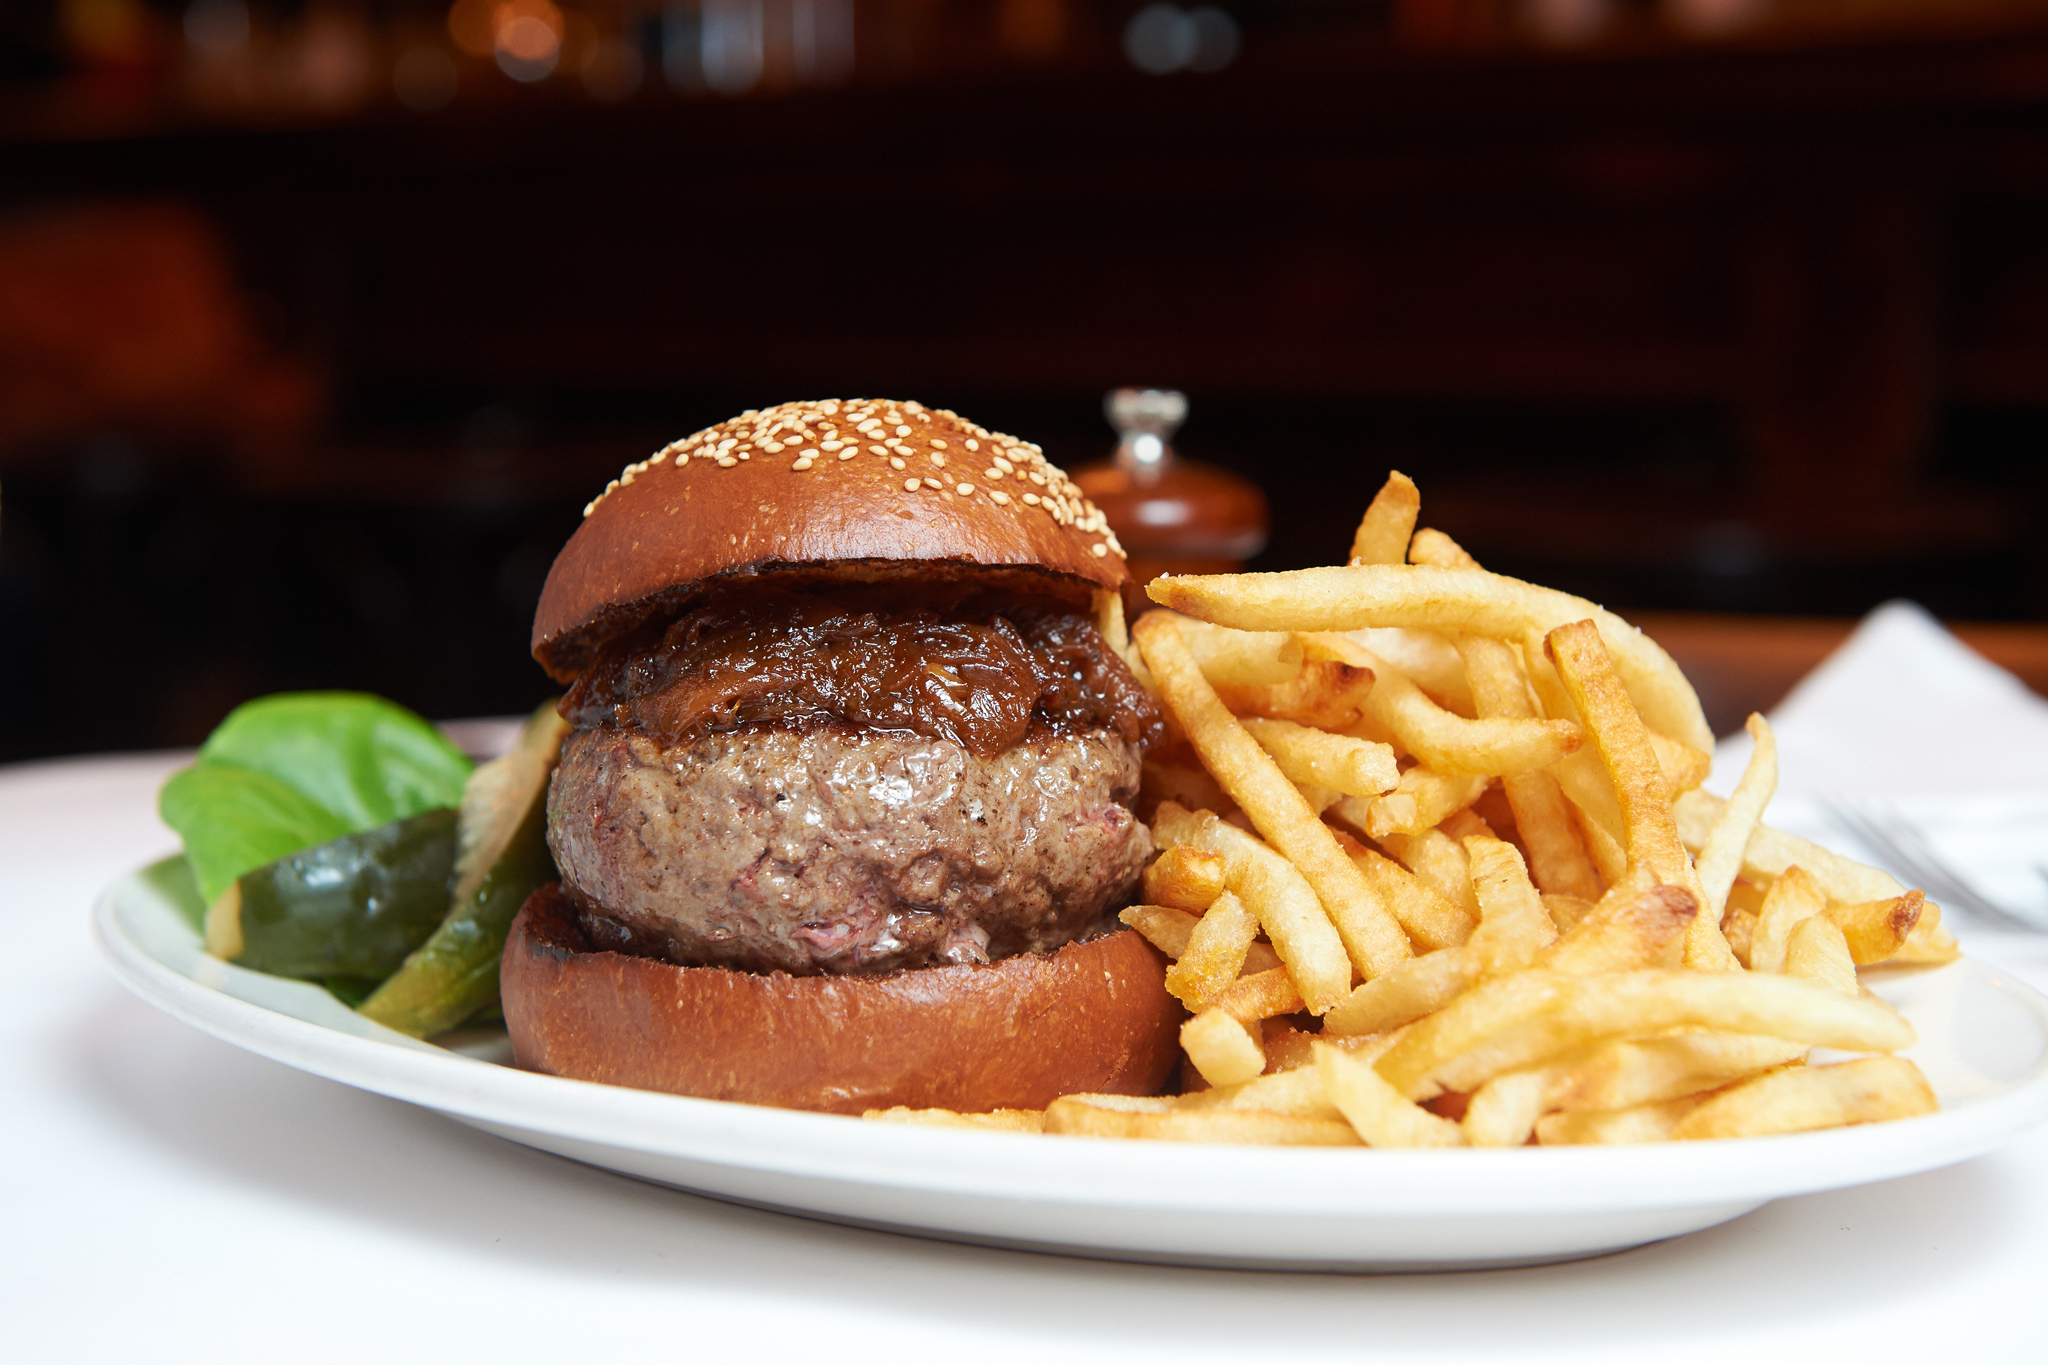 Black Label Burger at Minetta Tavern